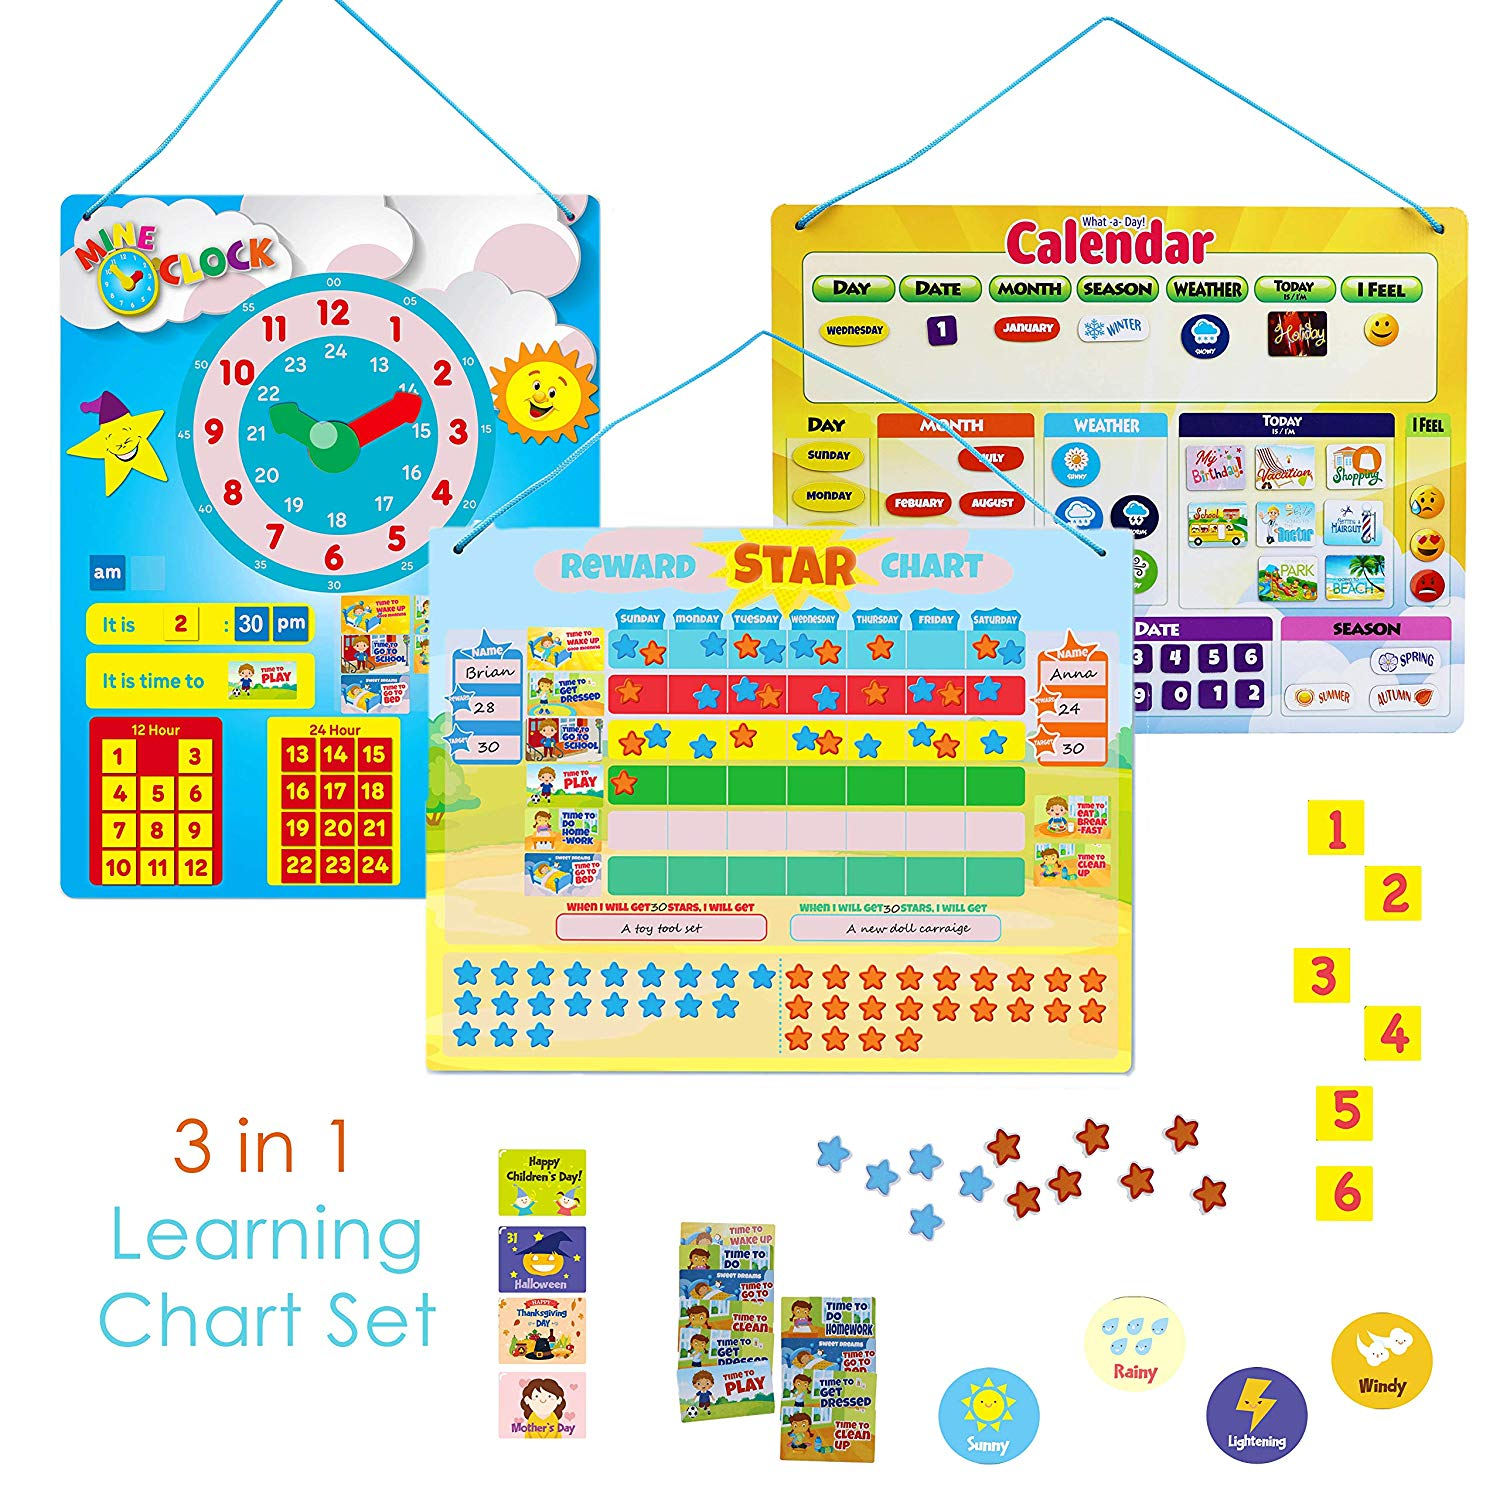 IQ Toys 3 in 1 Educational Posters Magnetic Learning Responsibility and Chore Charts - Kids Reward Star Chart, Children's Wall Calendar, and Time Telling Clock 186 Piece Magnetic All in One Chart Set